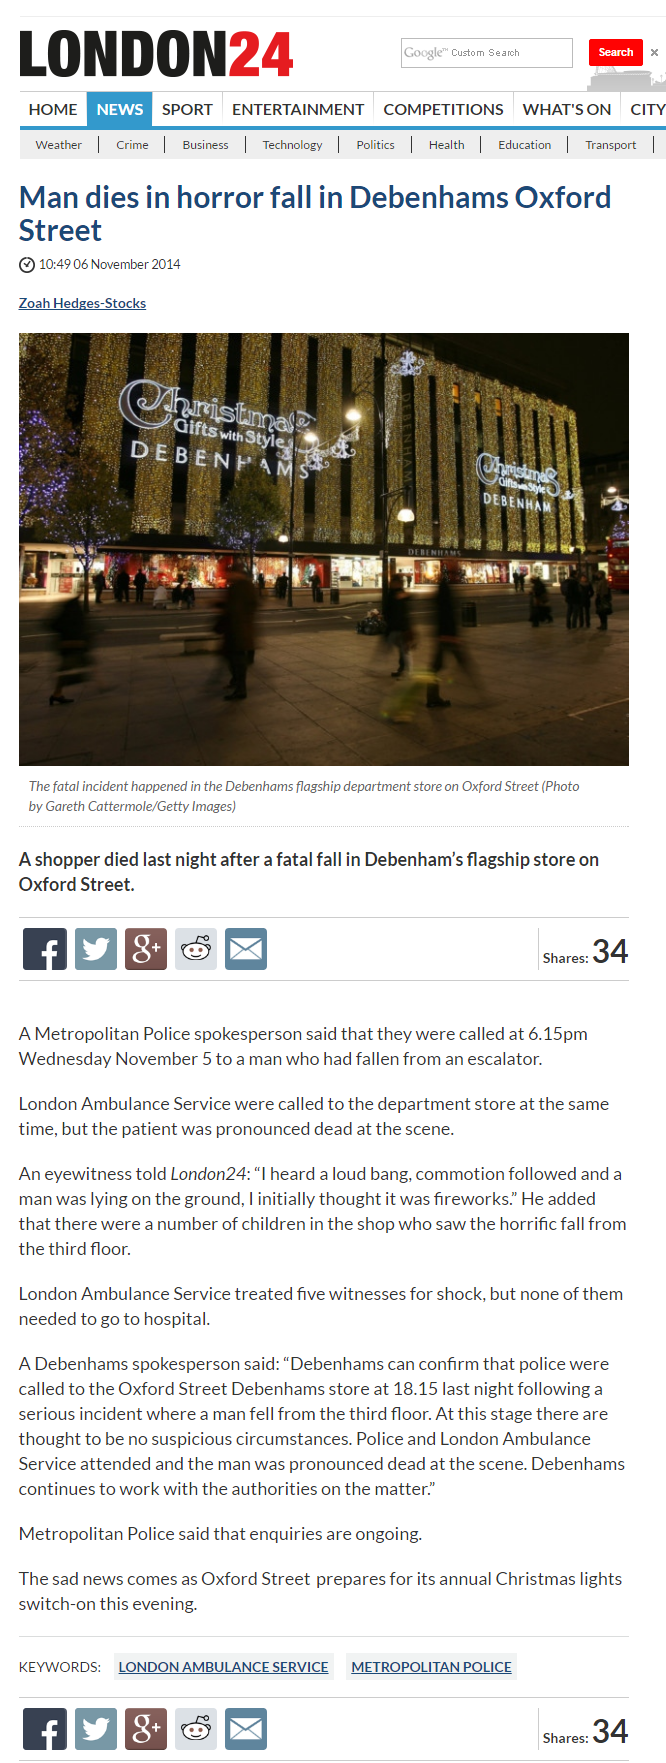 Man dies in horror fall in Debenhams Oxford Street   News   London 24